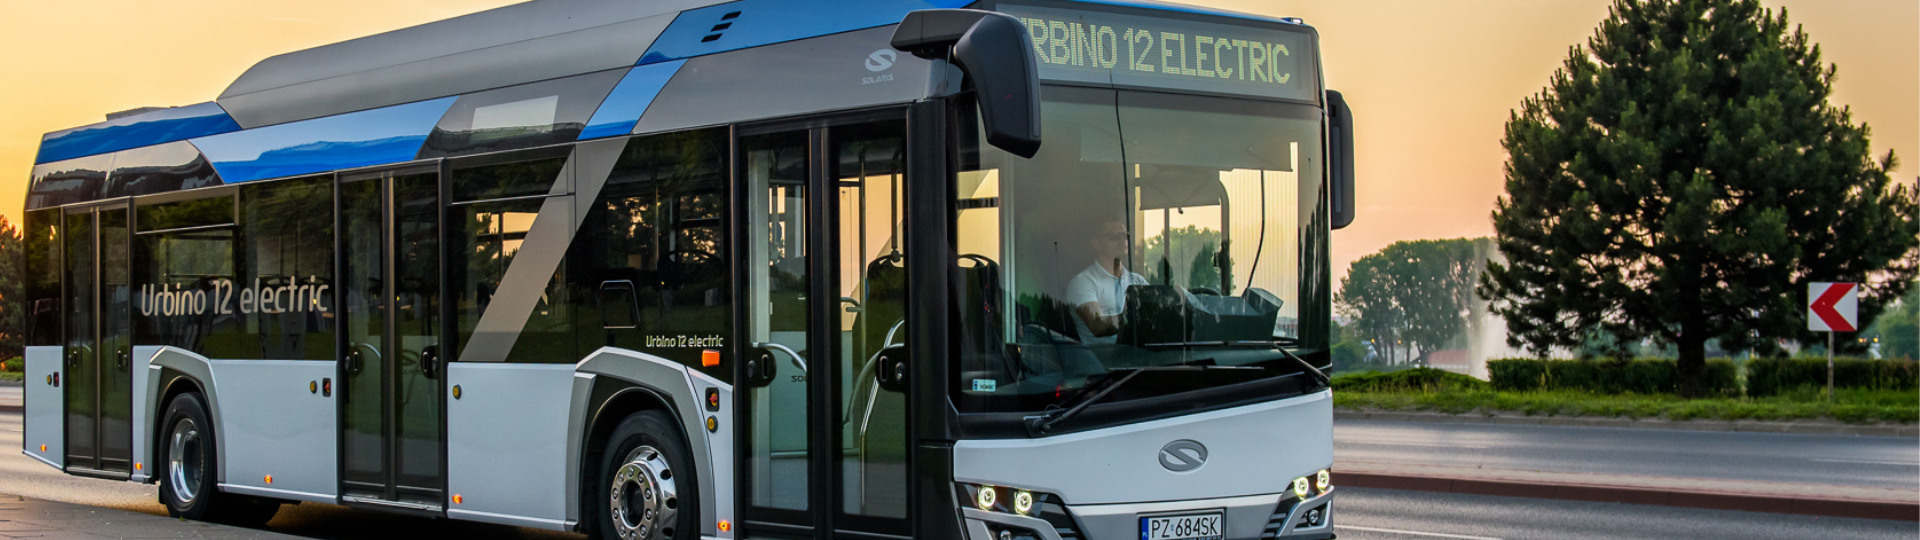 Electric Solaris buses open new chapter for public transport in Toruń